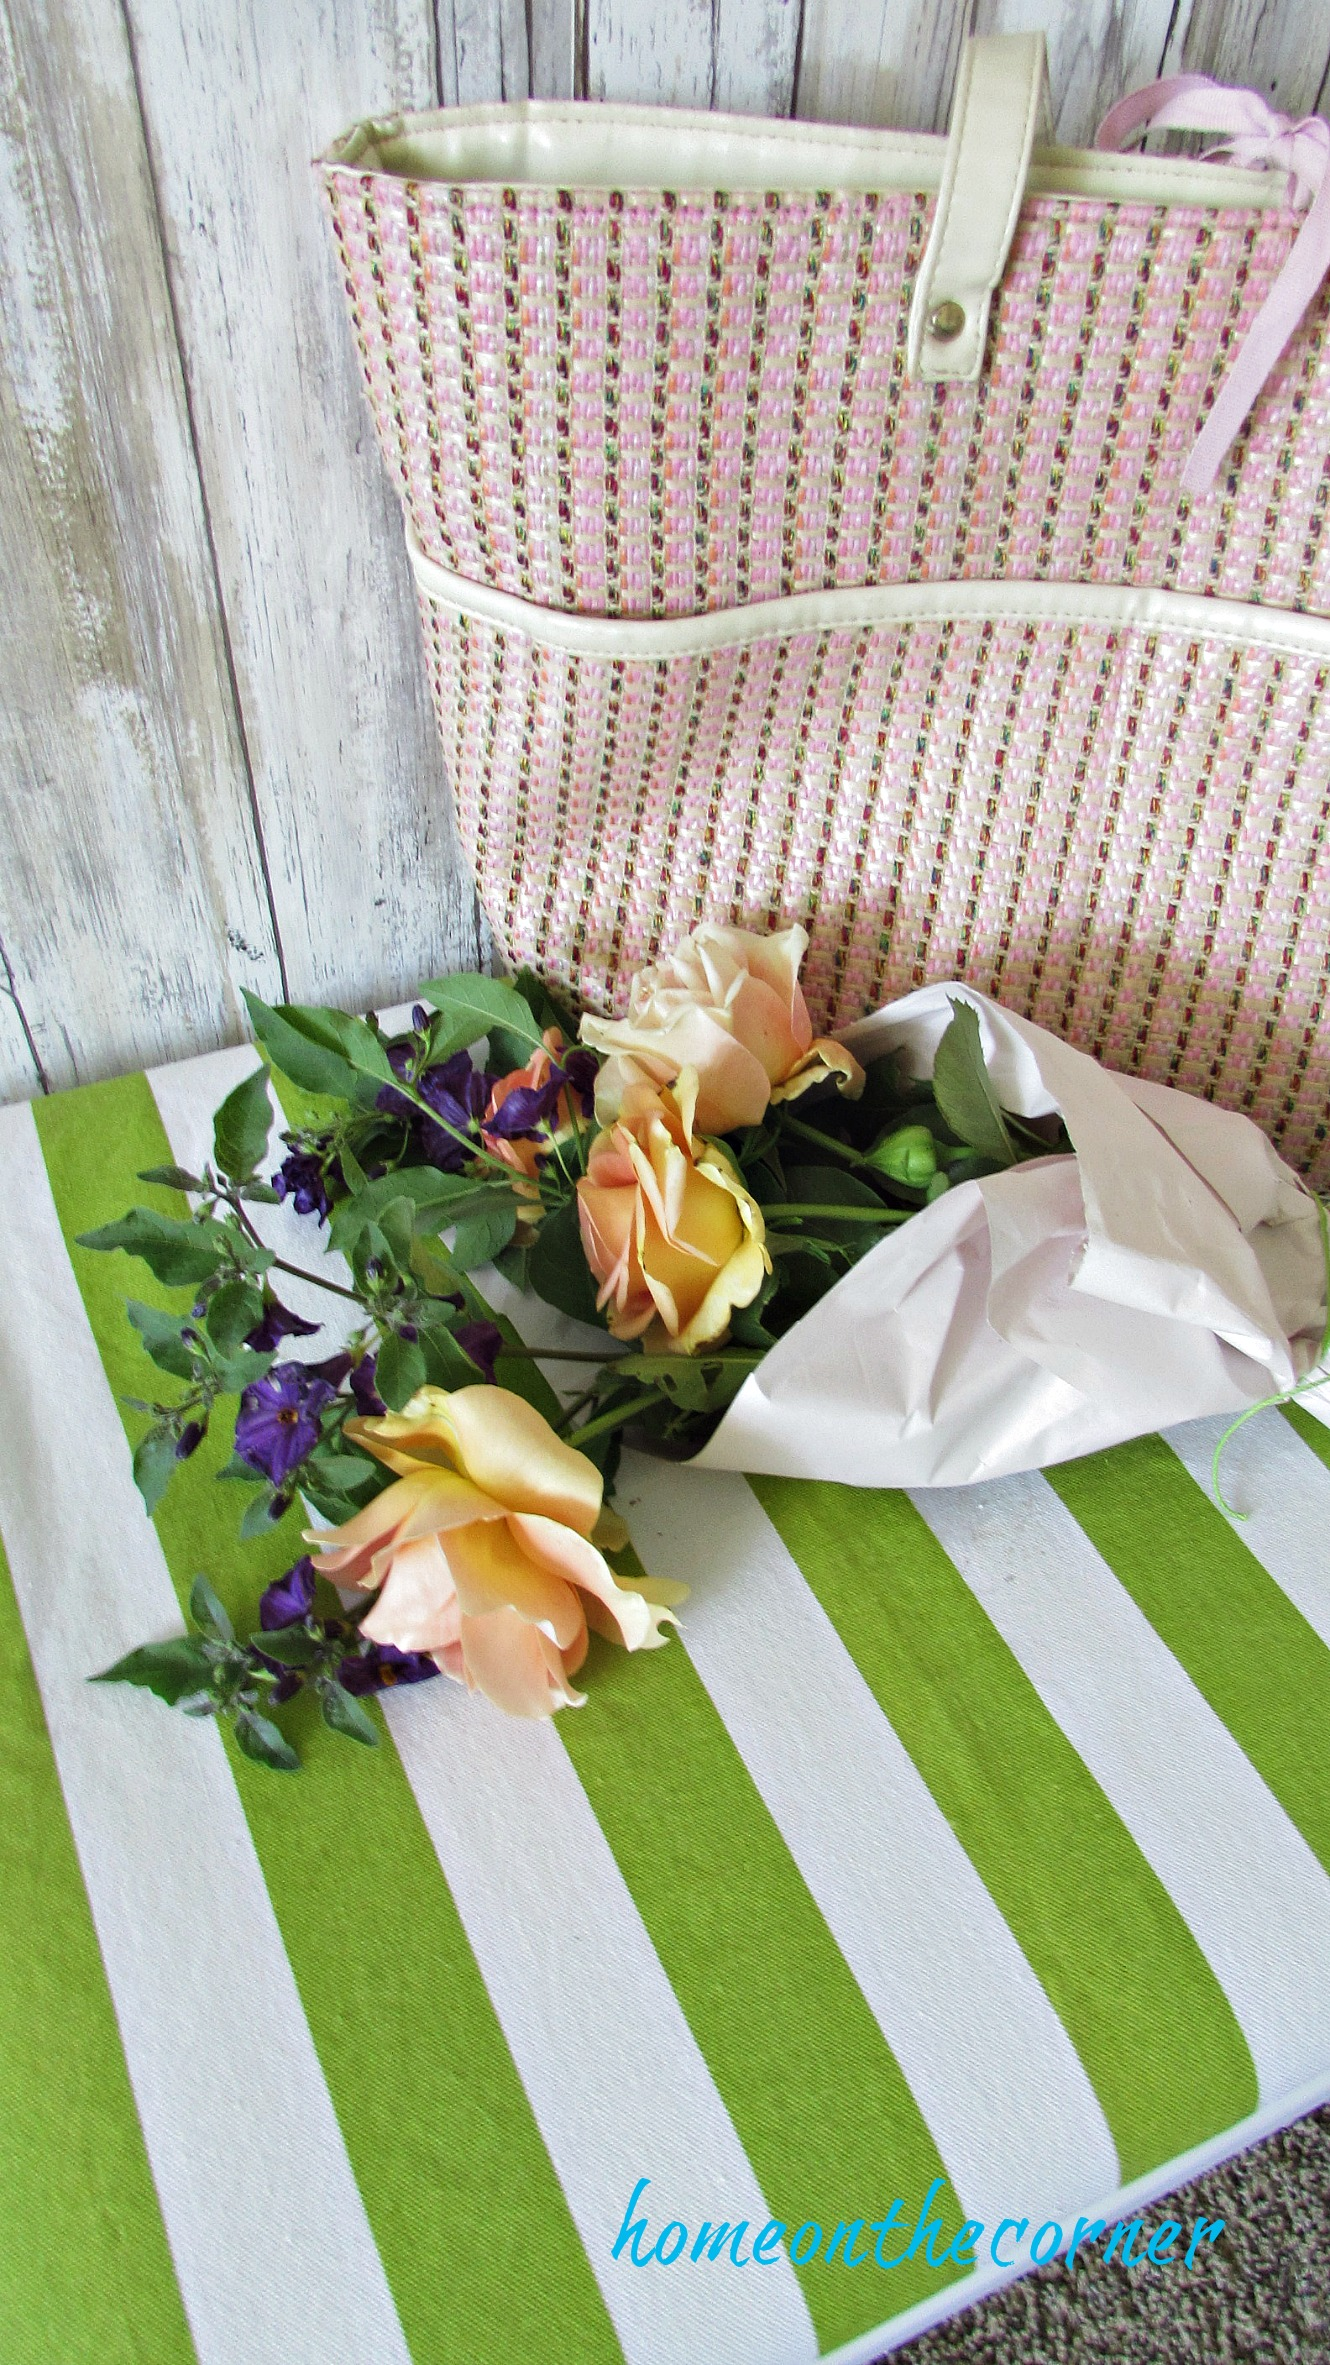 green and white striped bench with flowers and purse